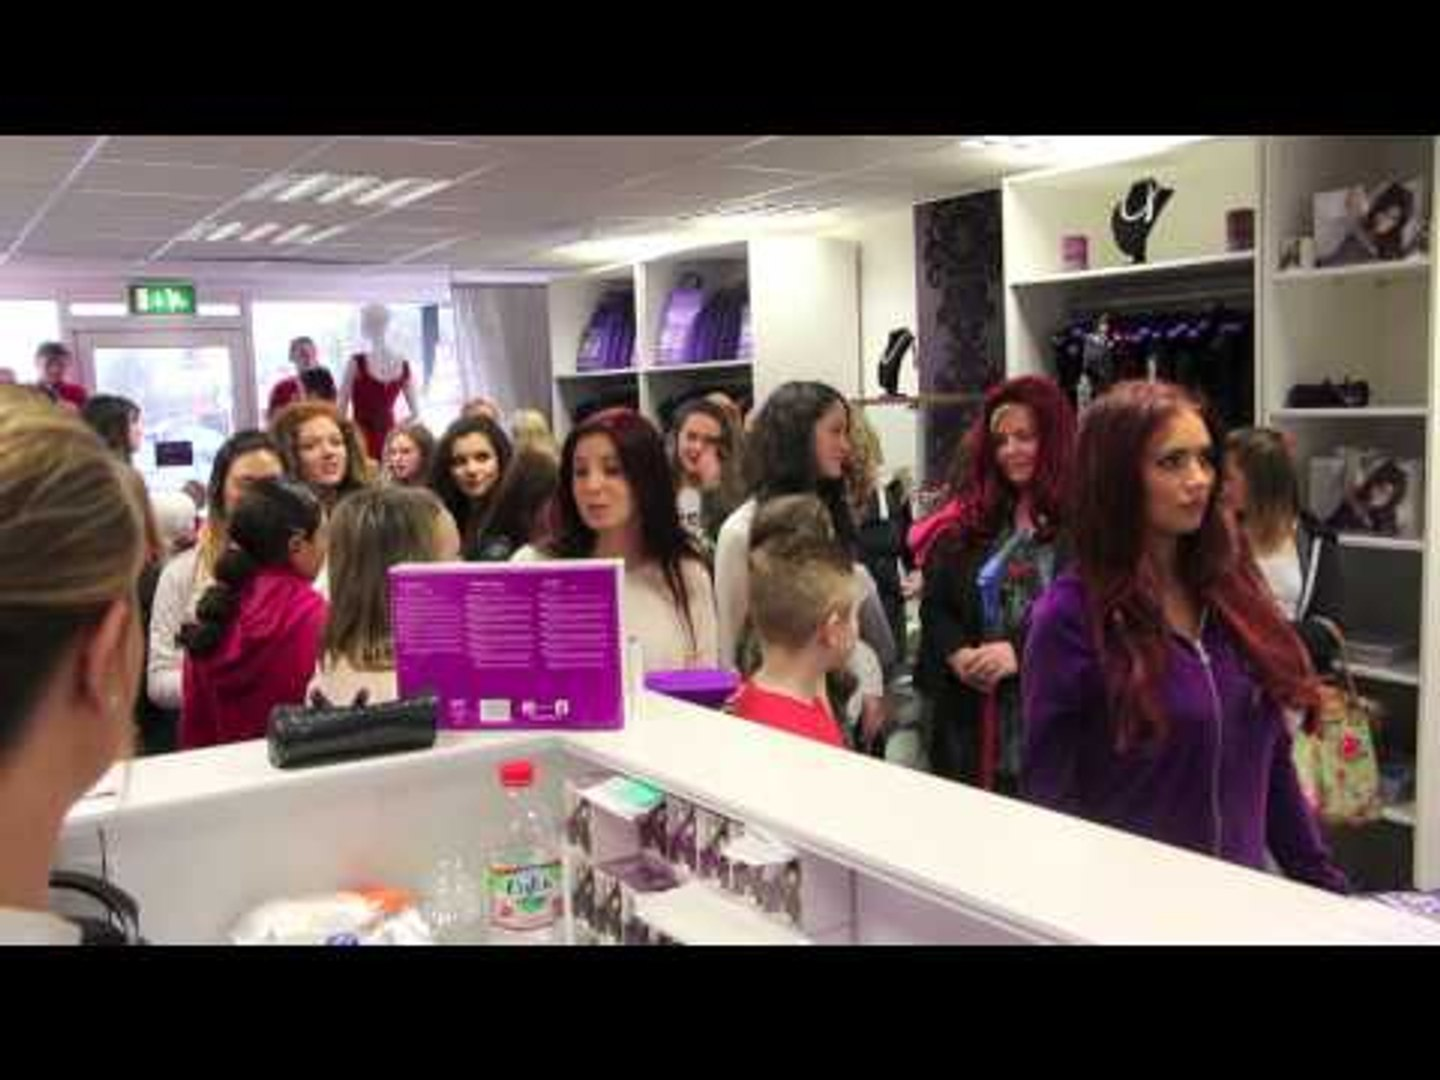 THE MAKING OF AMY CHILD'S HARLEM SHAKE VIDEO @ AMY CHILDS' BOUTIQUE / iFILM LONDON